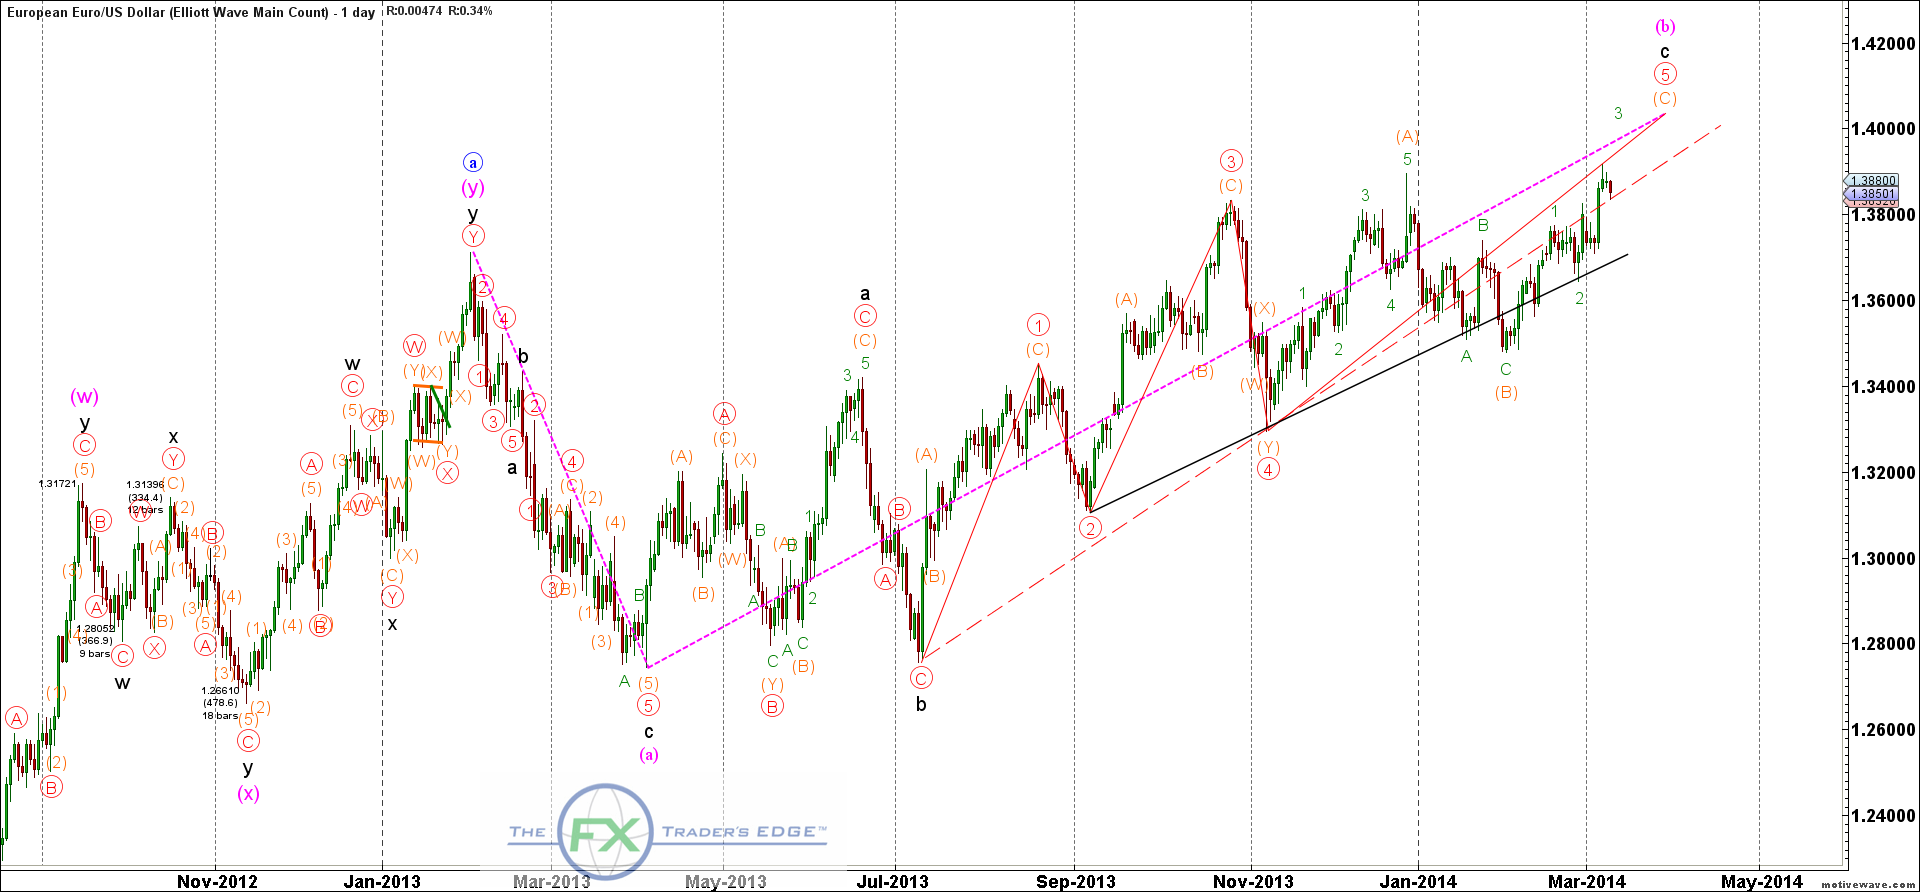 EURUSD-Elliott-Wave-Main-Count-Mar-11-0816-AM-1-day